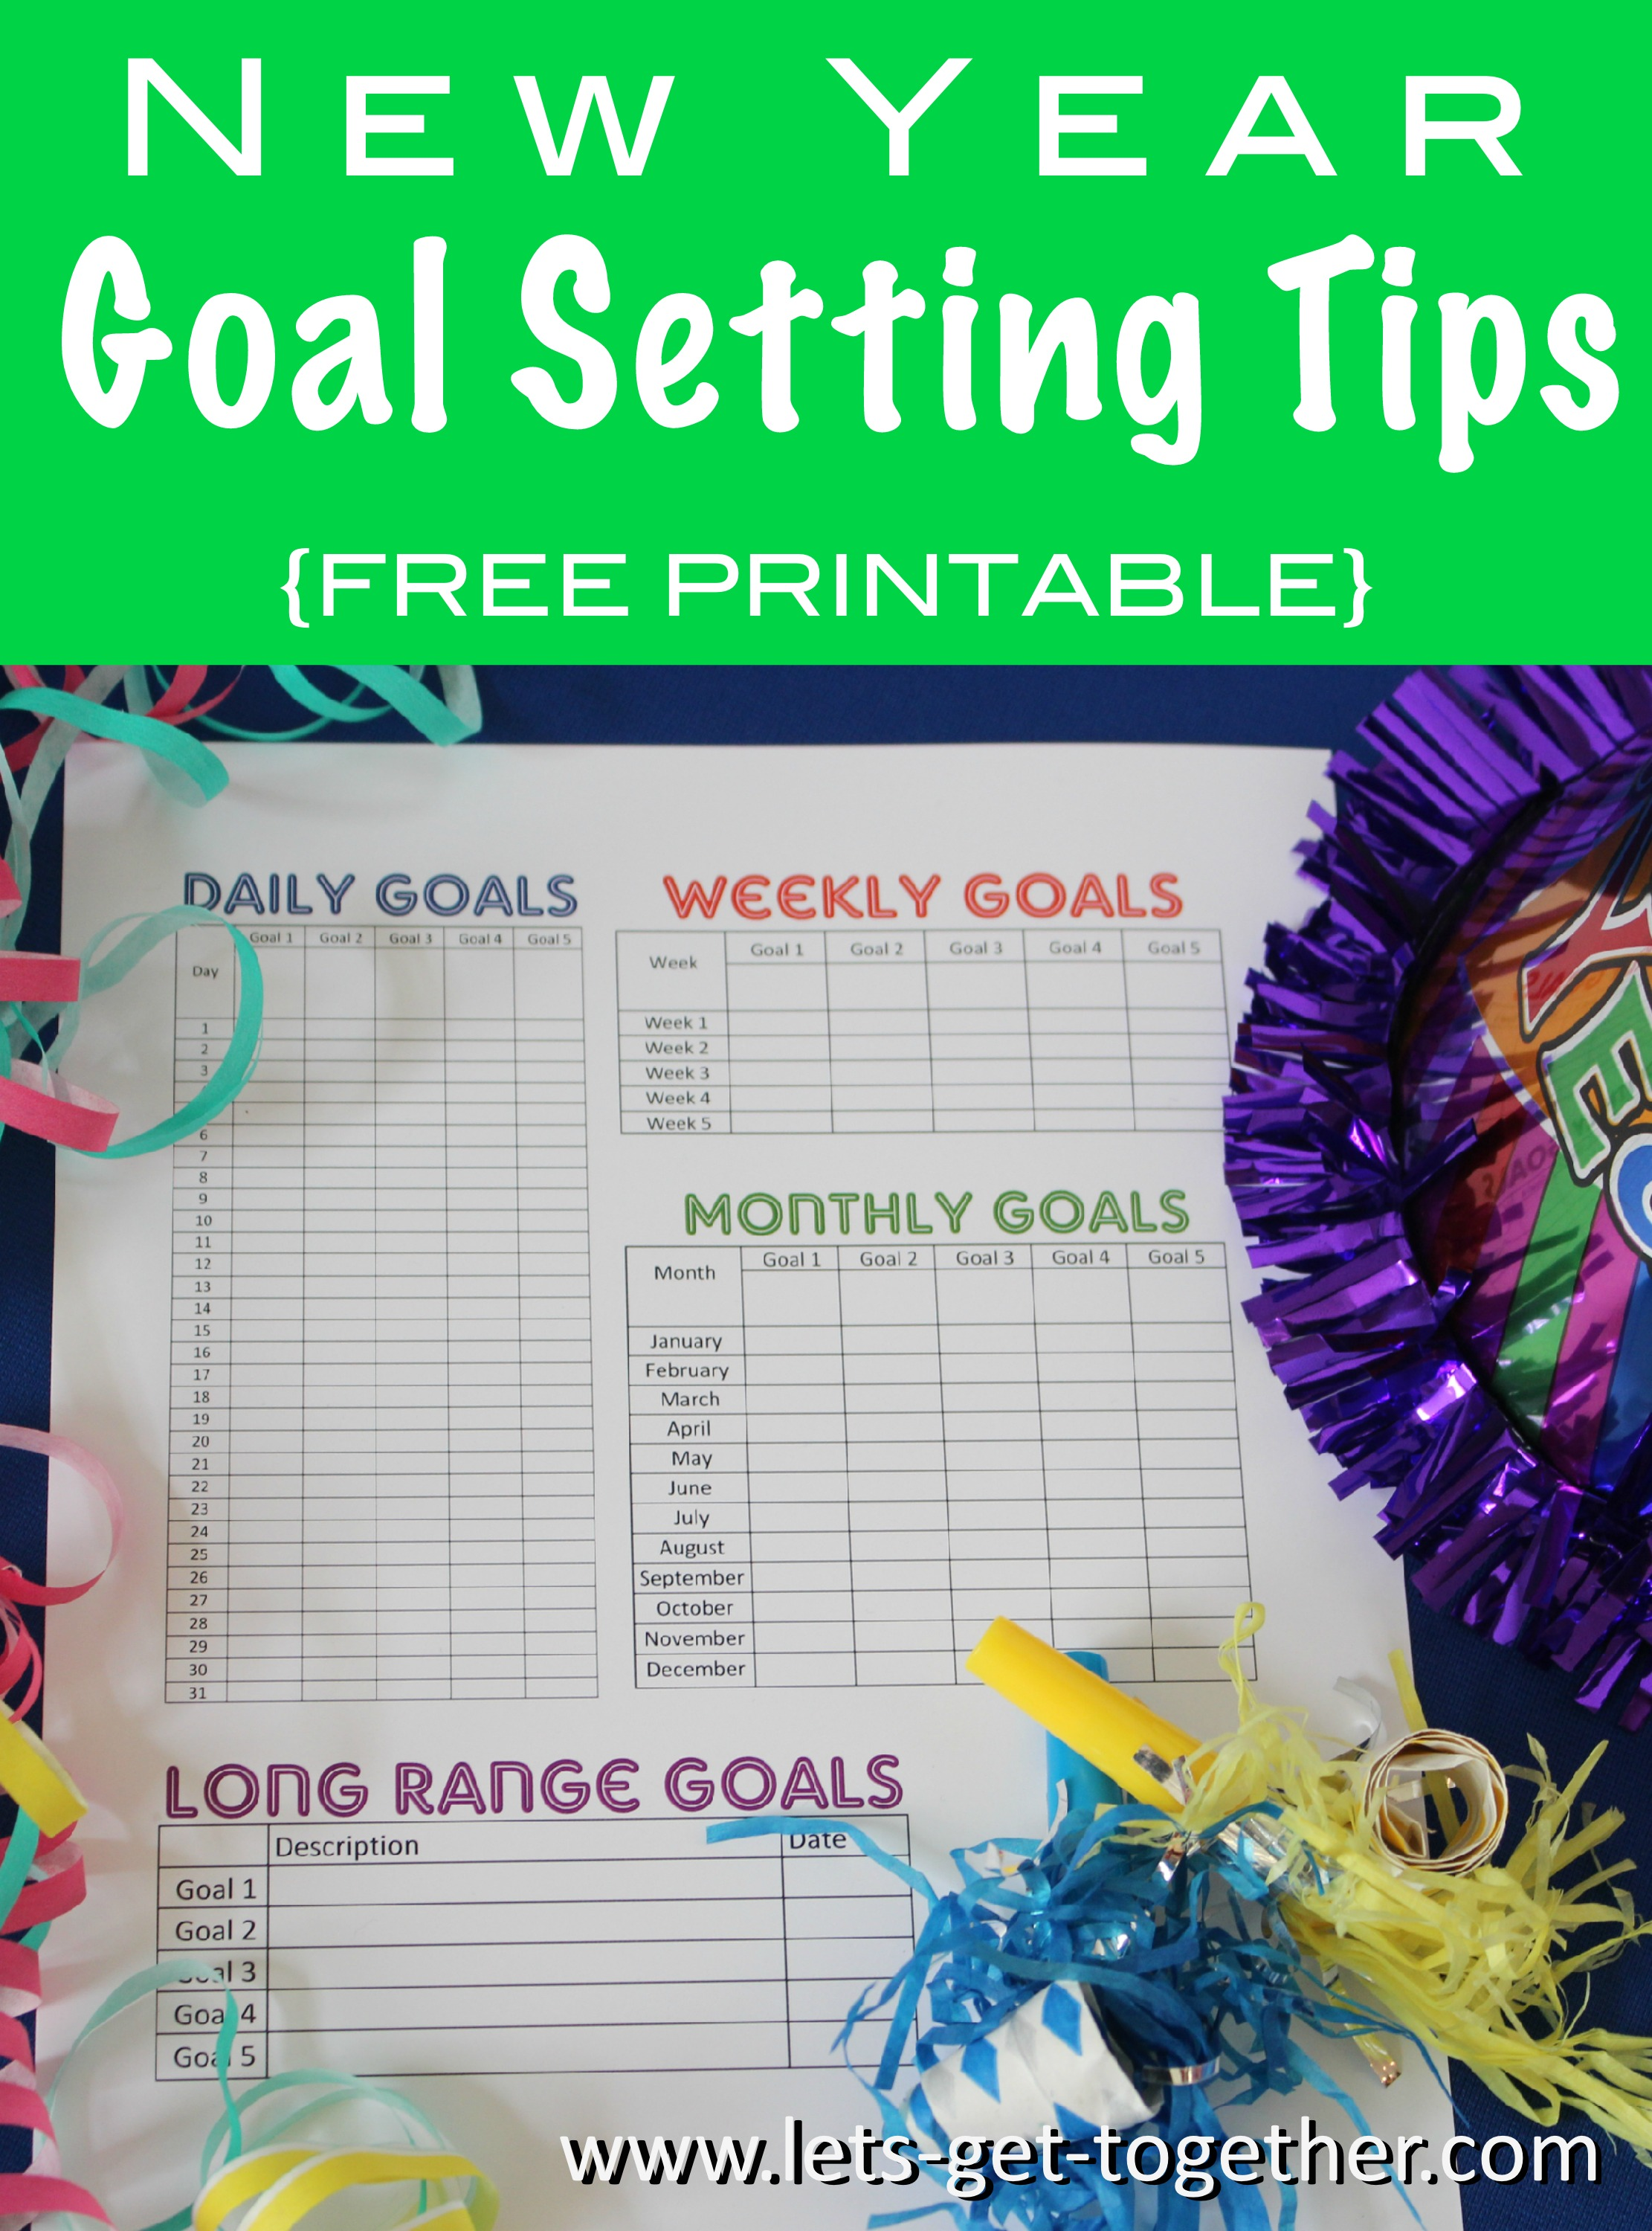 New Year Goal Setting Tips Free Printable